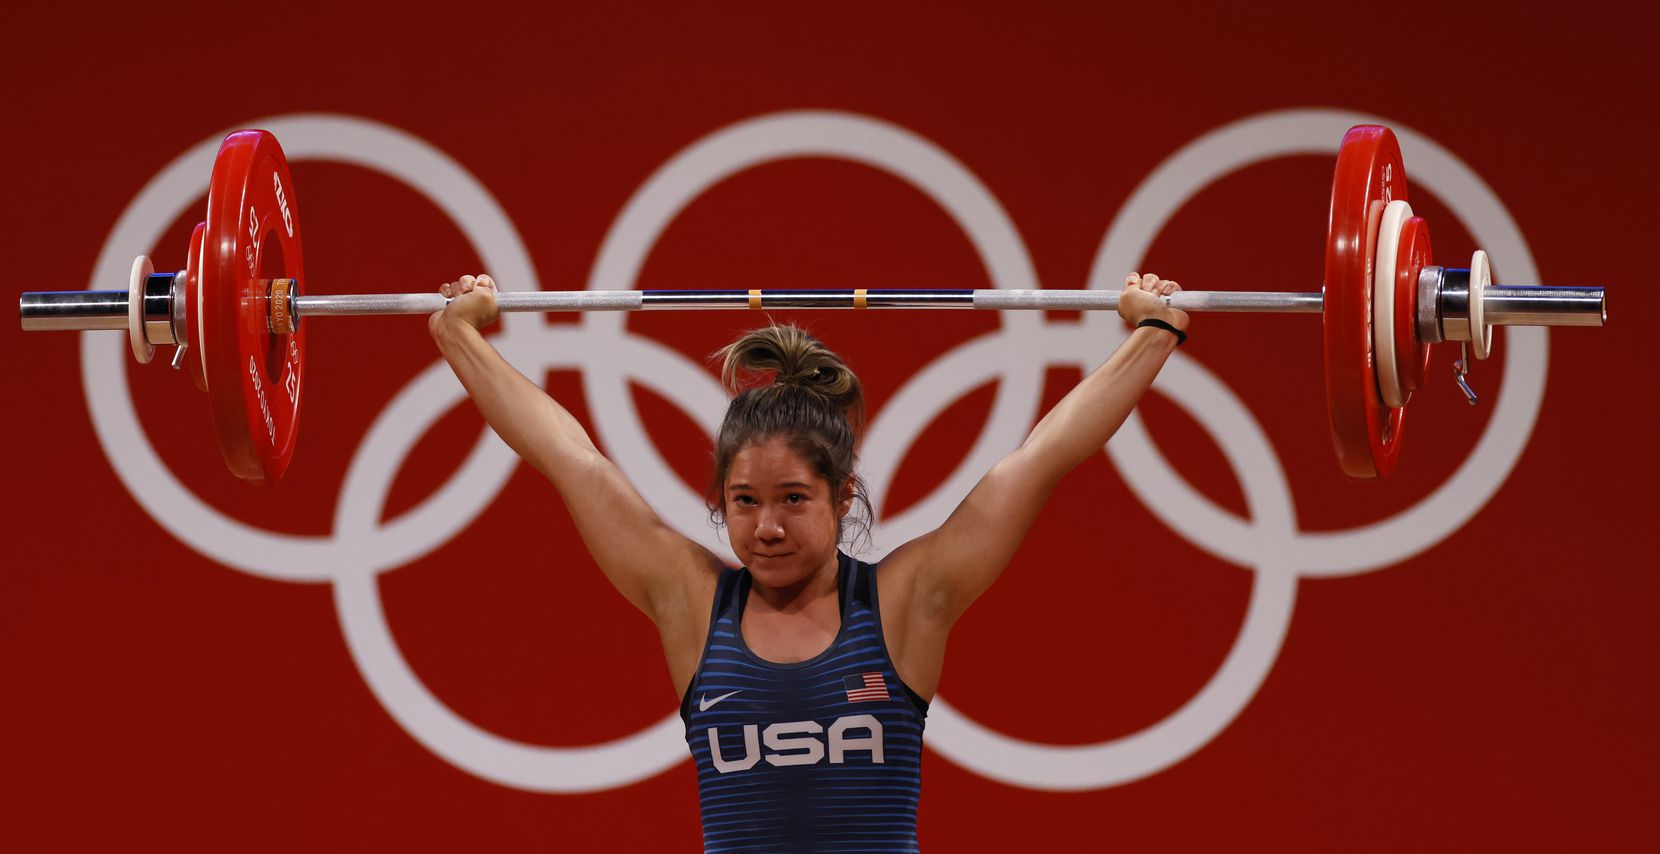 USA's Jourdan Delacruz competes in the first attempt of the snatch round during the women's 49 kg weightlifting final  during the postponed 2020 Tokyo Olympics at Tokyo International Forum on Saturday, July 24, 2021, in Tokyo, Japan.